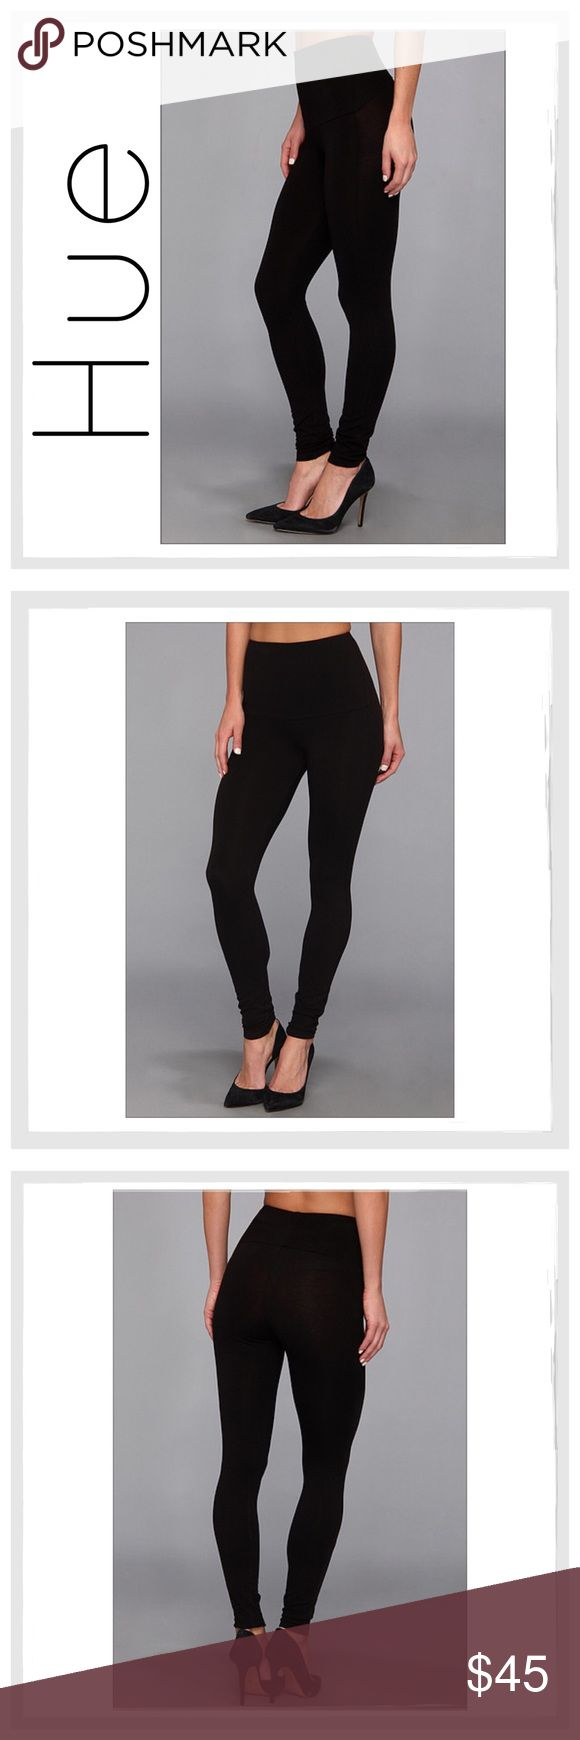 ✨HUE Black Ponte Shaping/Slimming Leggings✨ ✨HUE Black Ponte Shaping/Slimming Leggings✨The HUE high waist shaping ponte leggings use a mesh panel to hold and smooth the abdominal area, while a rayon and spandex blend slims and lifts the legs and buttocks✨The solid colored leggings are versatile and look great with bold prints or subdued solid hues. These full-length leggings extend to the ankles for a classic look✨Material: Rayon/Nylon/Spandex✨These Leggings Really So The Trick And Are…